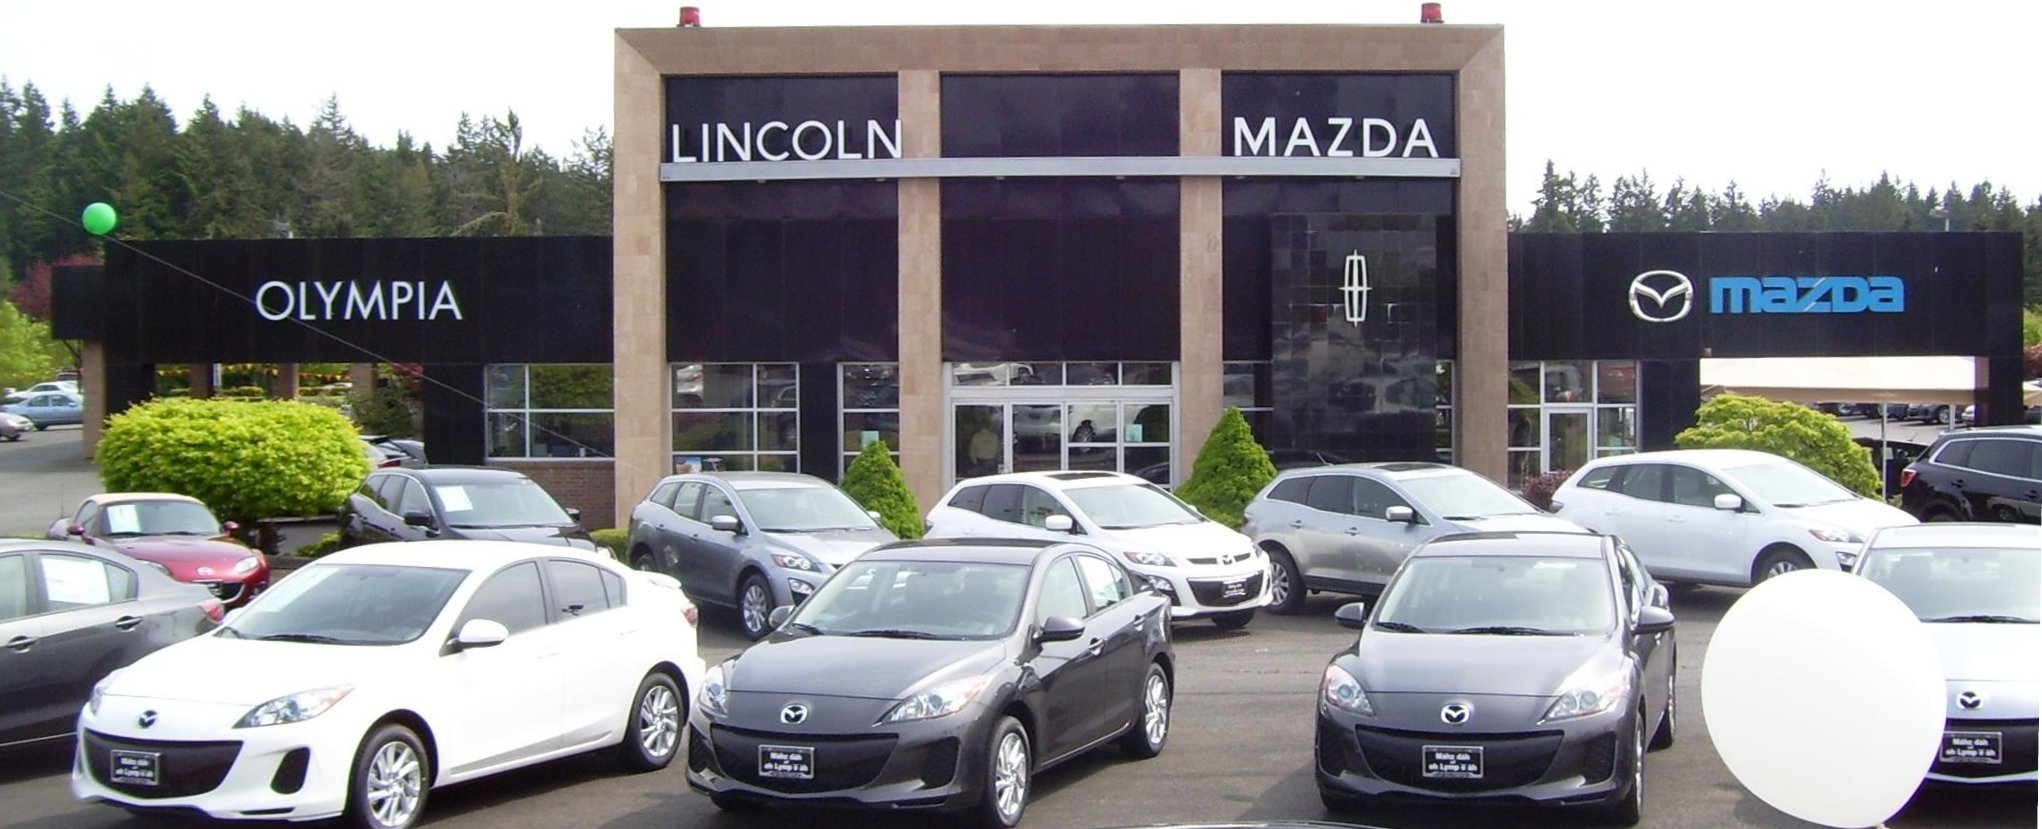 Lincoln & Mazda of Olympia retains WSI as their Trusted Digital Advisor for SEO & PPC - WSI Cyber Smart Digital Marketing